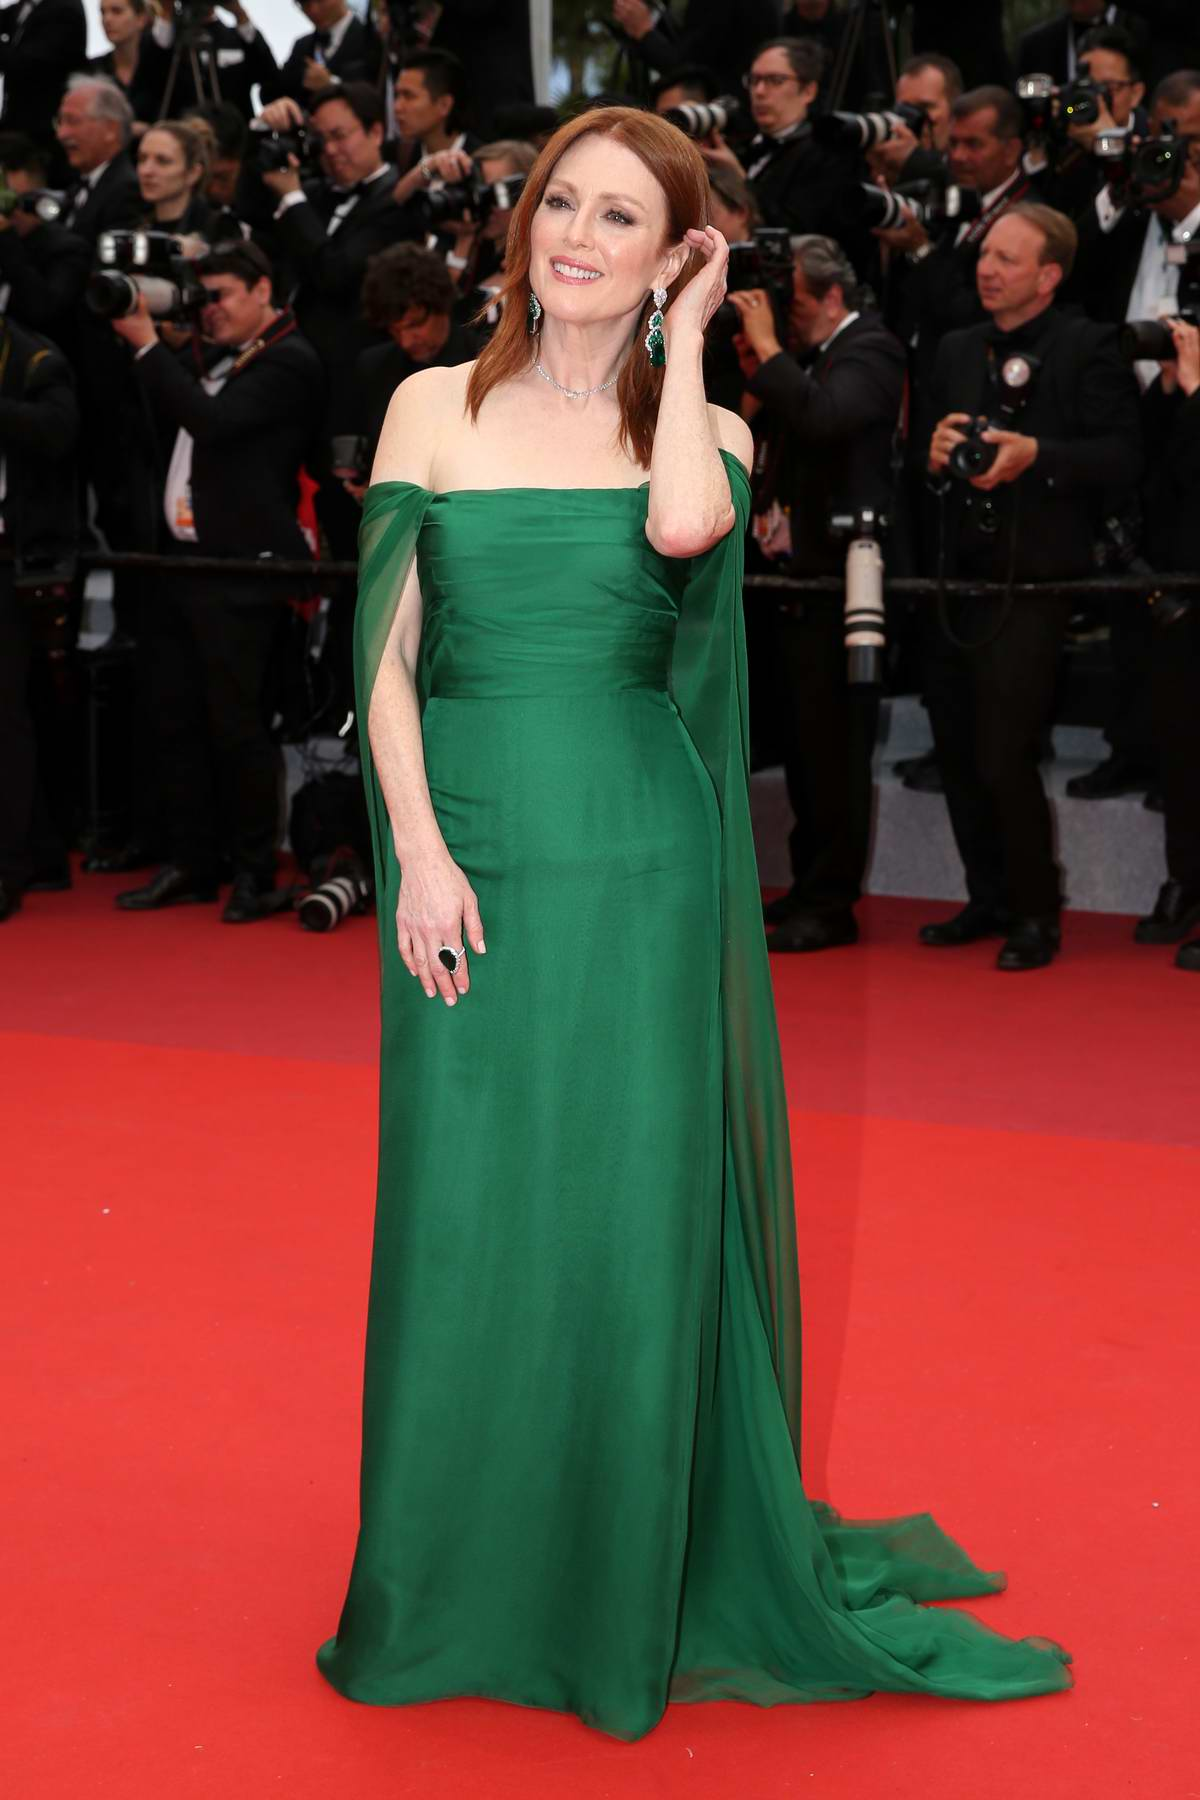 Julianne Moore attends 'The Dead Don't Die' Premiere during The 72nd annual Cannes Film Festival in Cannes, France